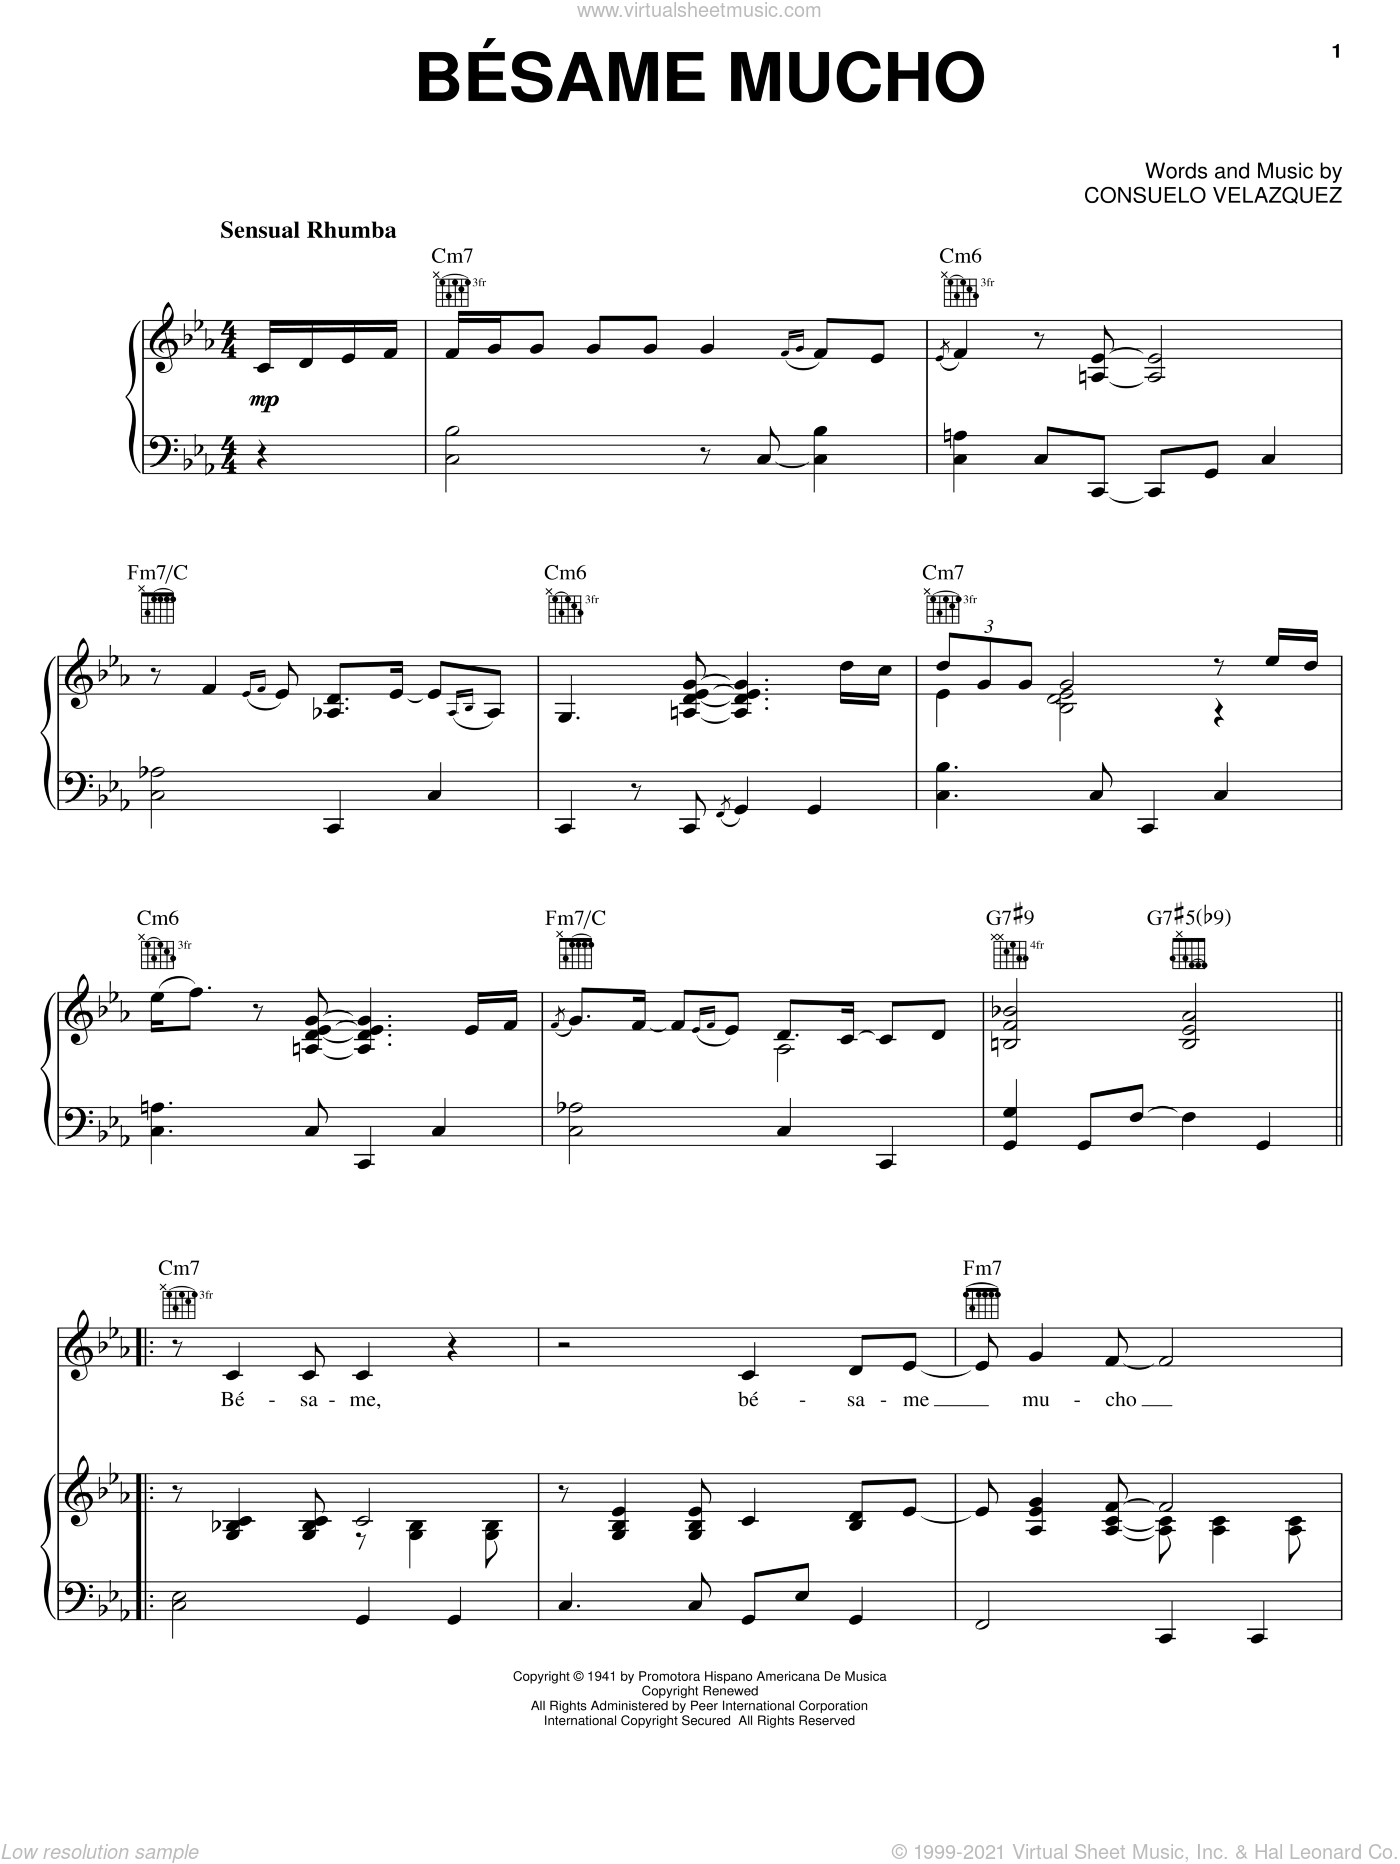 Besame Mucho (Kiss Me Much) sheet music for voice, piano or guitar by Andrea Bocelli, Consuelo Velazquez and Sunny Skylar, intermediate skill level